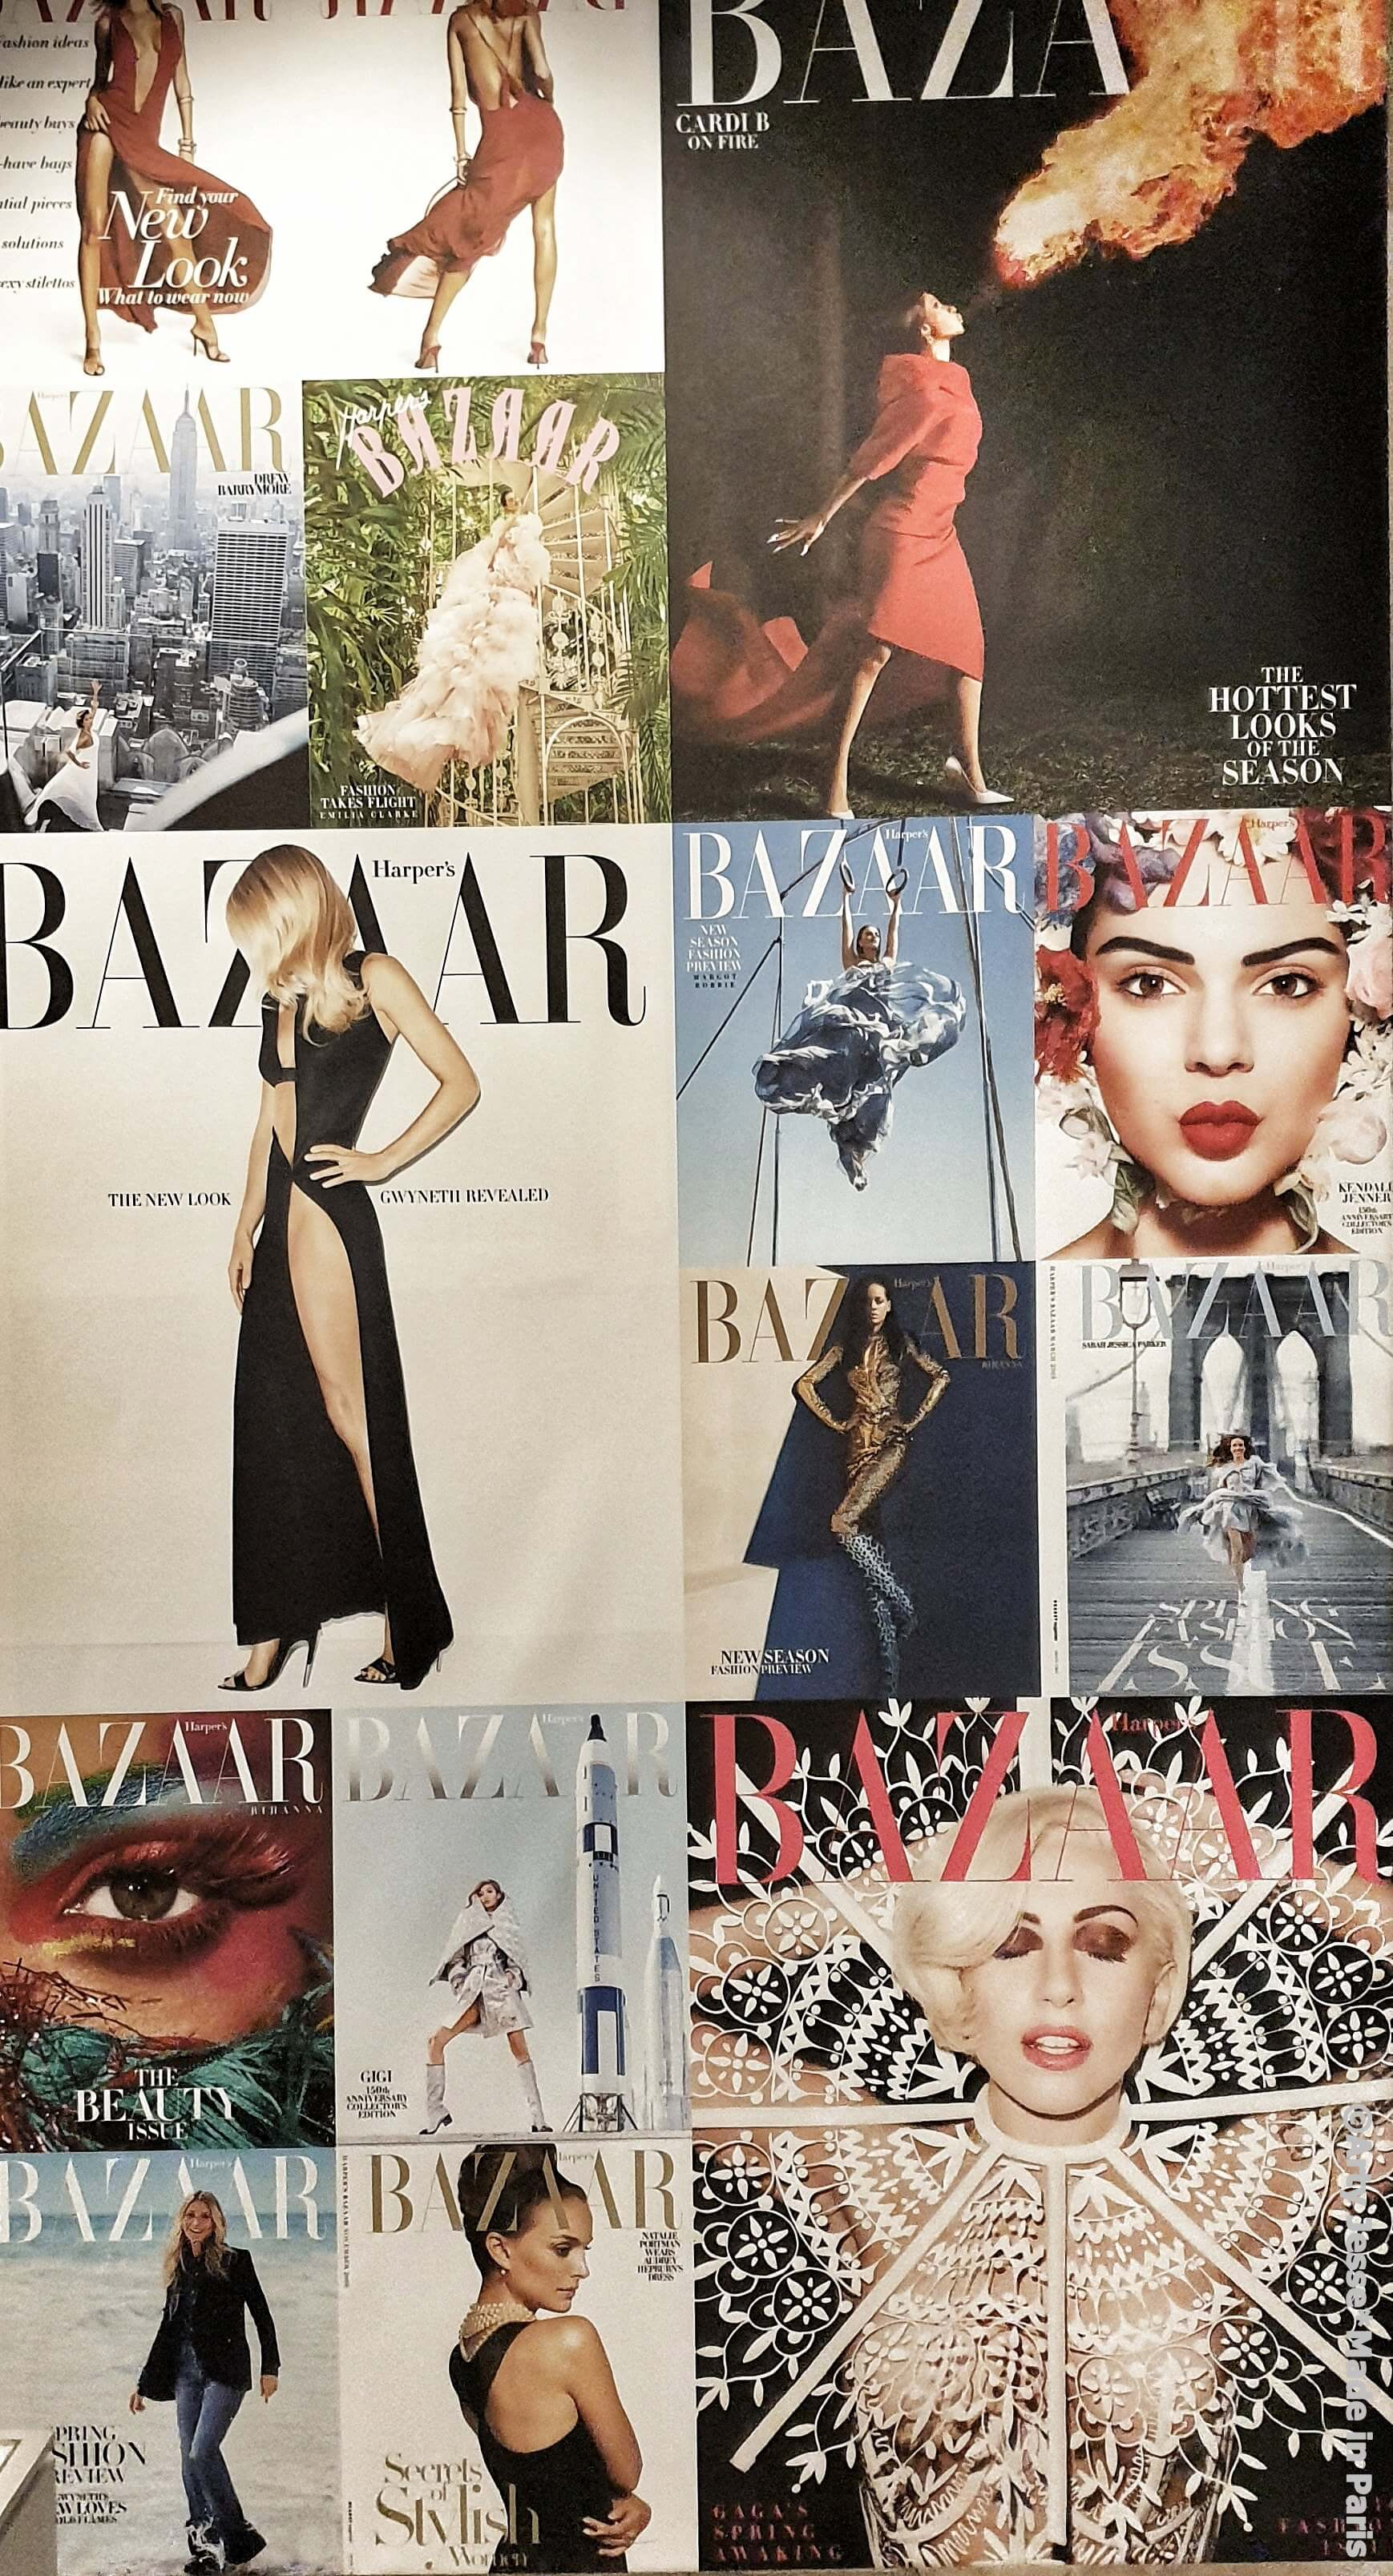 harper's bazaar, exposition, mad, paris, expo paris